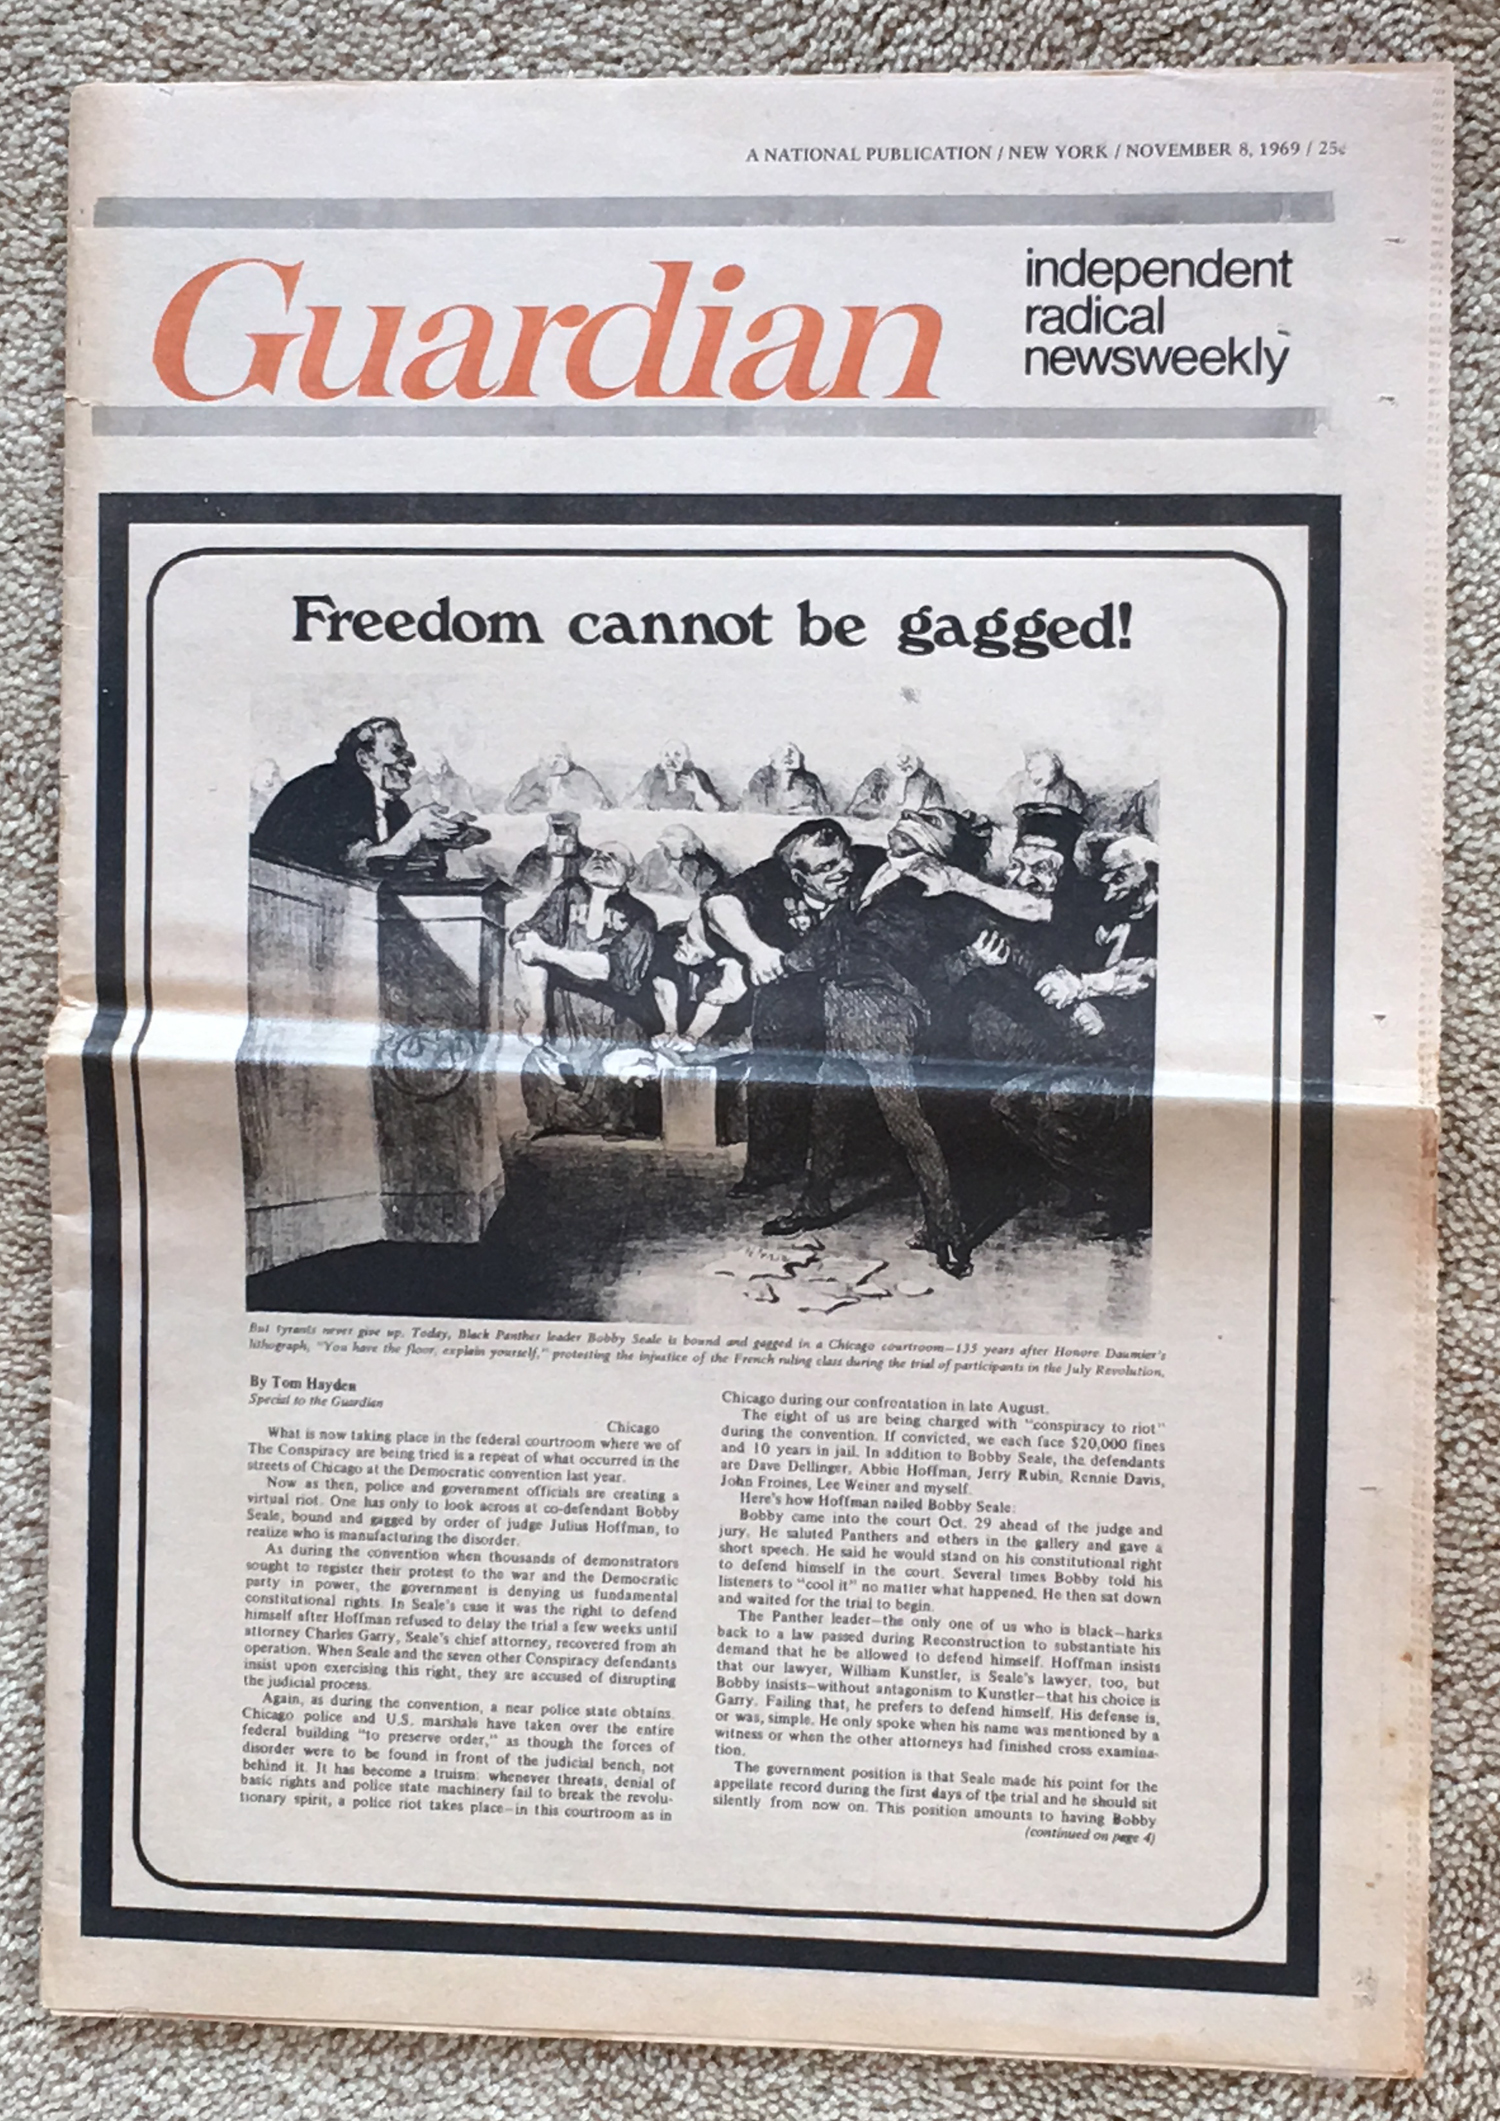 Image for The Guardian: Independent Radical Newsweekly, November 8, 1969